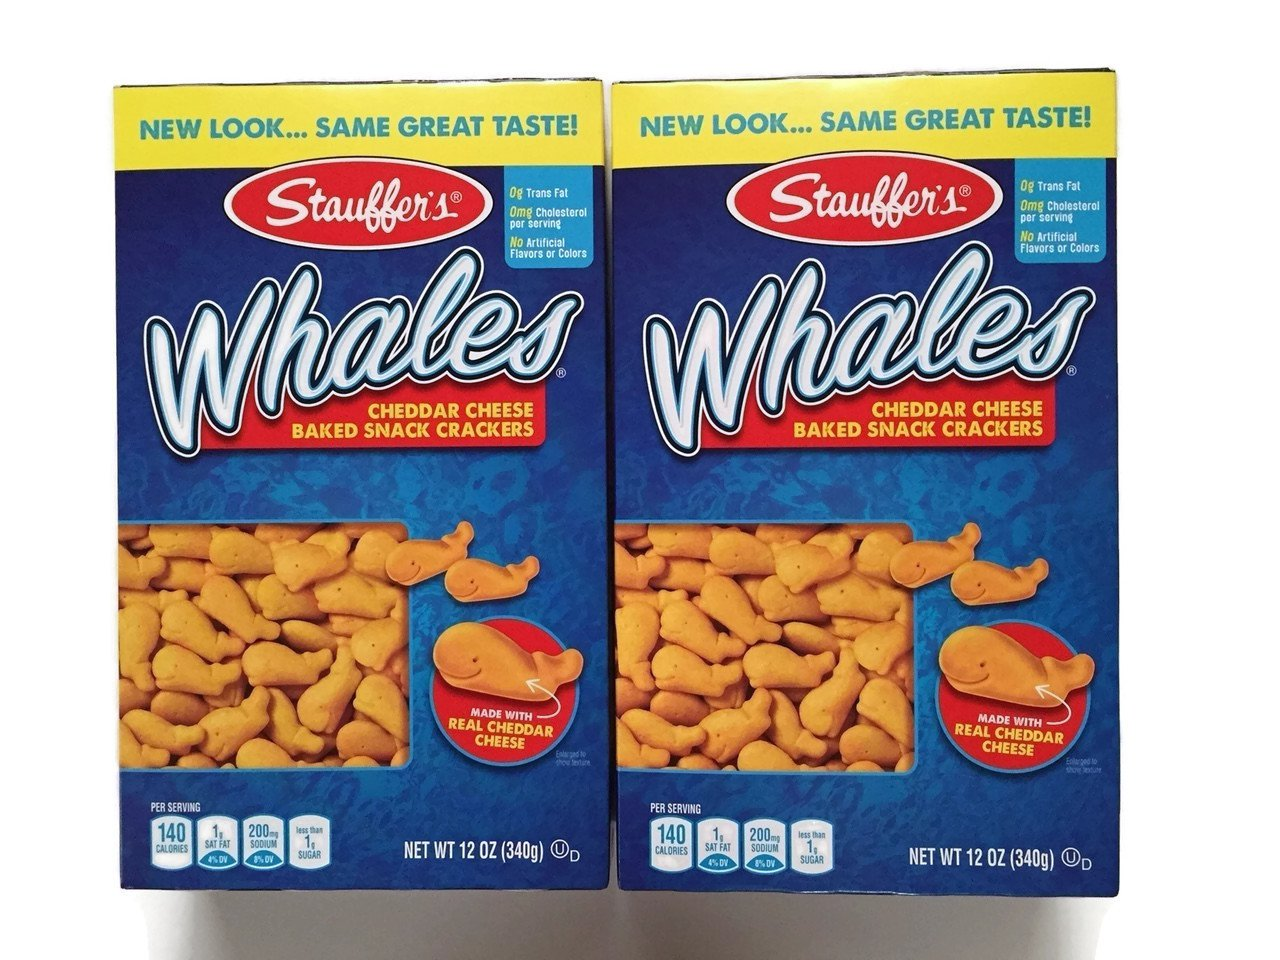 Stauffer's Whales, Cheddar Cheese Baked Snack Crackers, 12 Oz. Boxes (Set of 2)